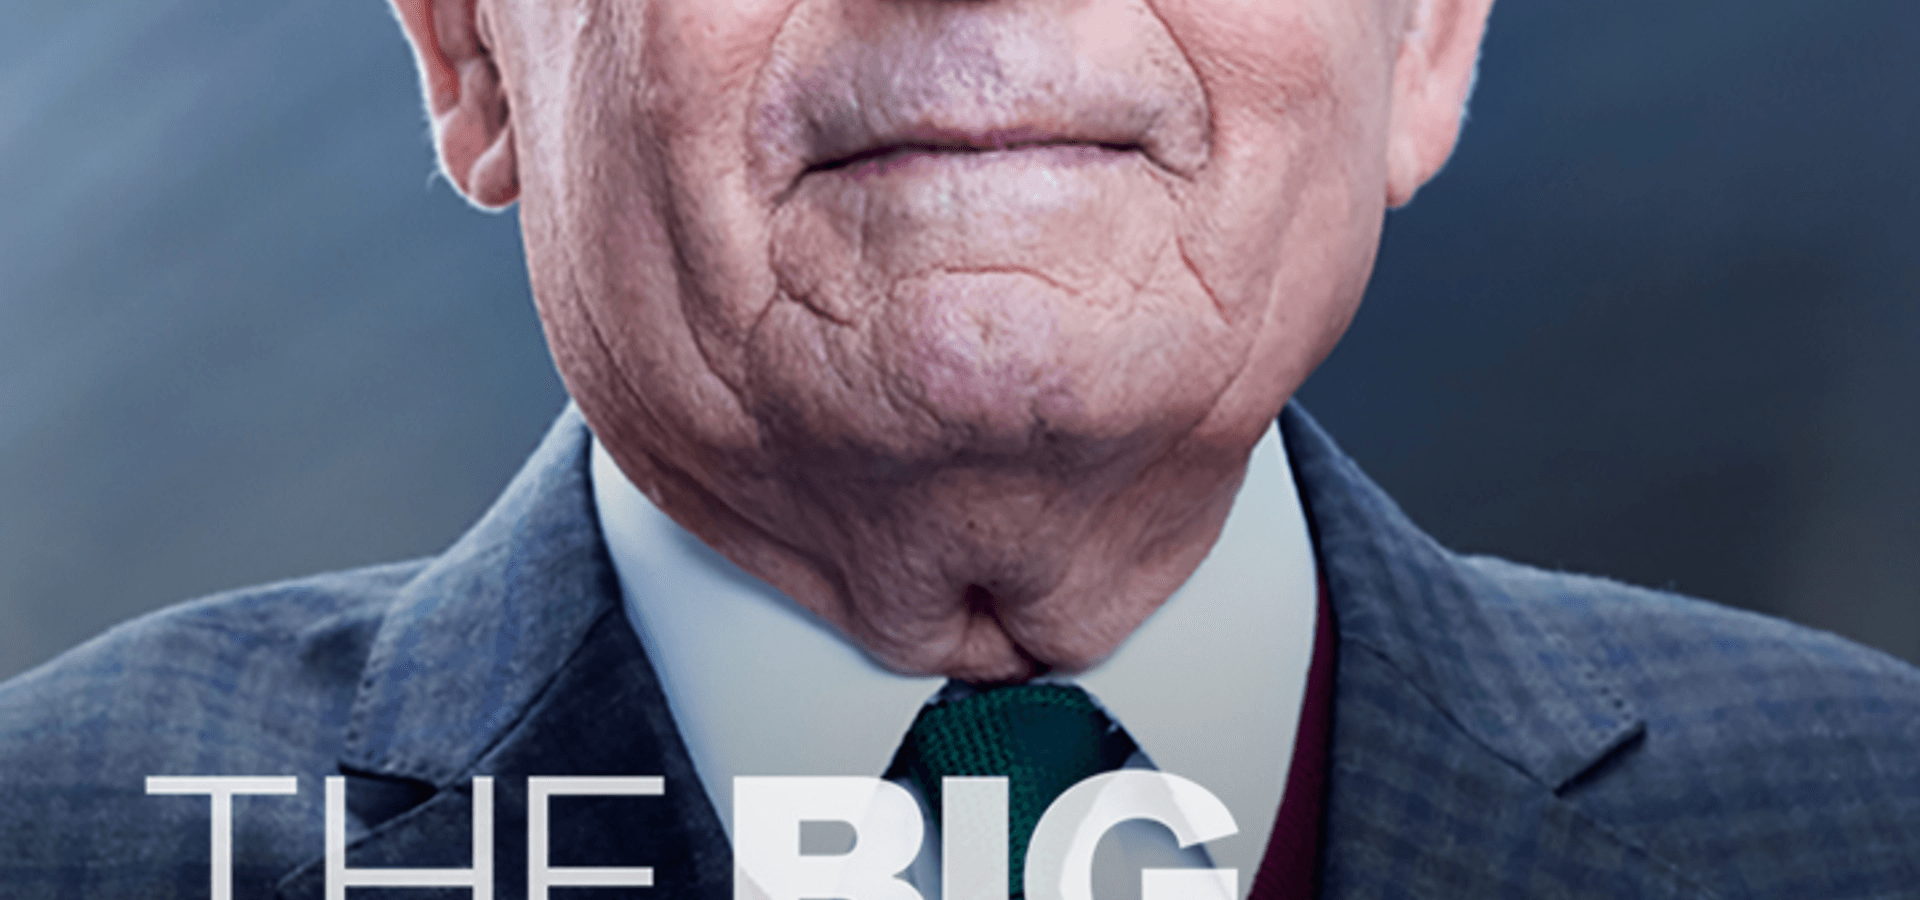 The Big Interview with Dan Rather Season 8